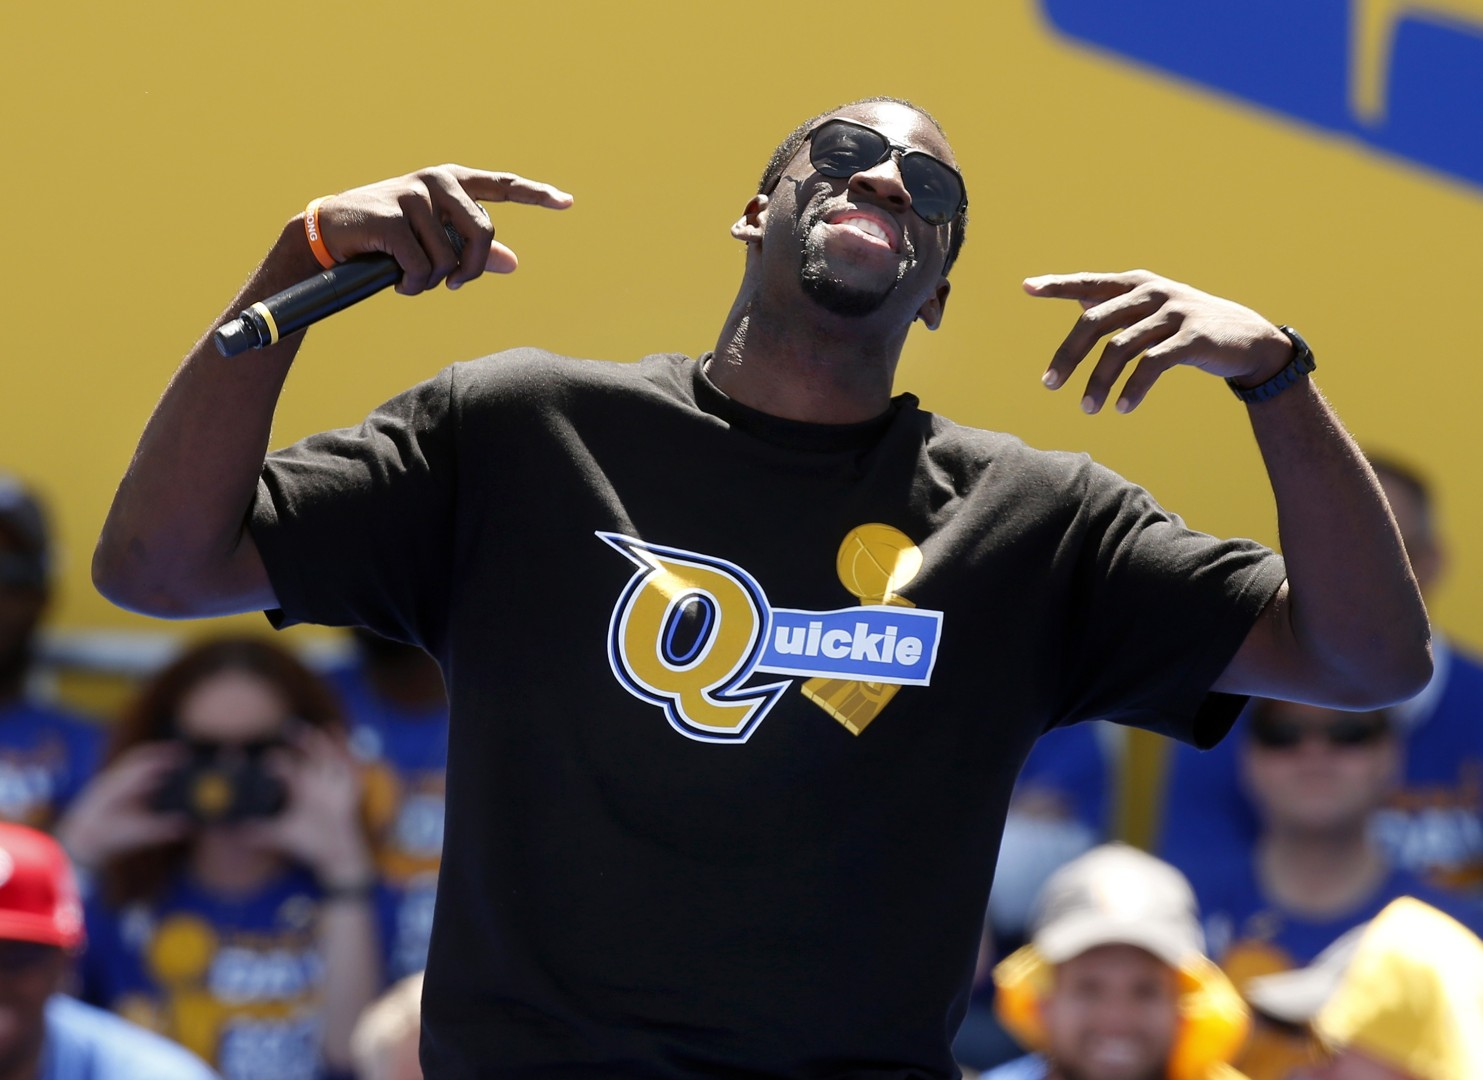 efb56f38dfe Warriors  Draymond Green mocks Cavaliers with T-shirt ... but LeBron James  fires back